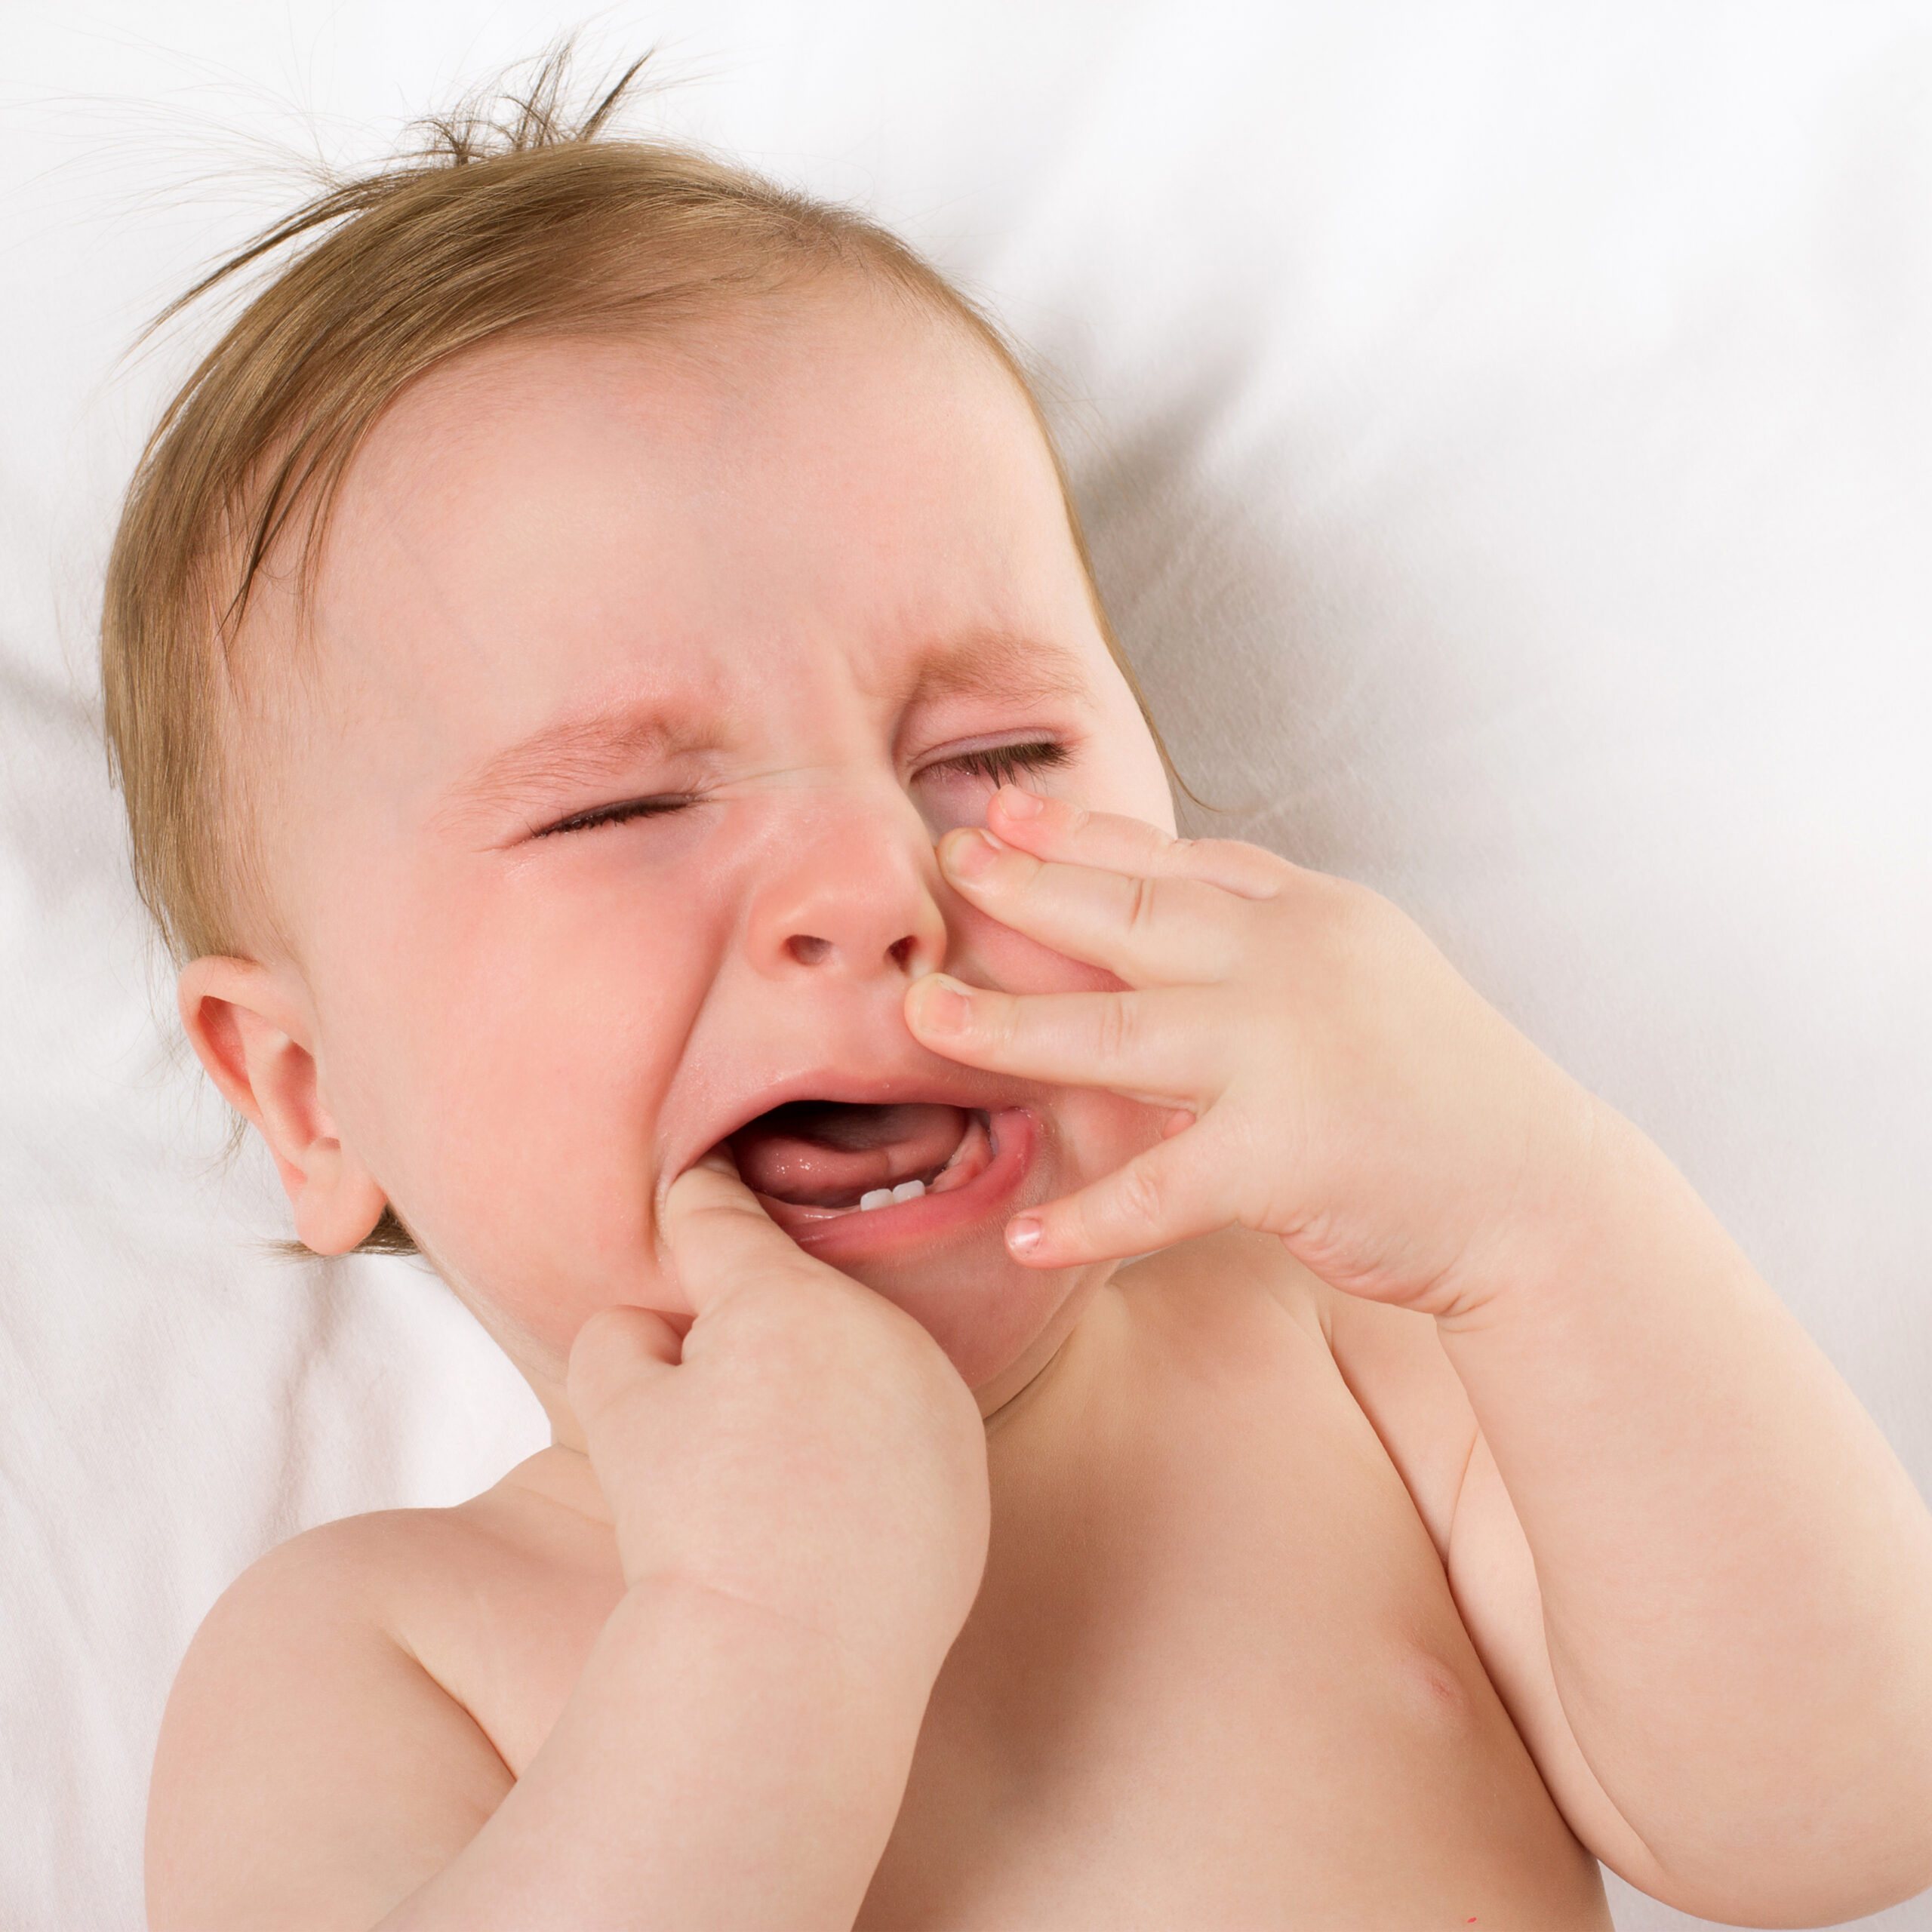 baby crying in pain from teething symptoms